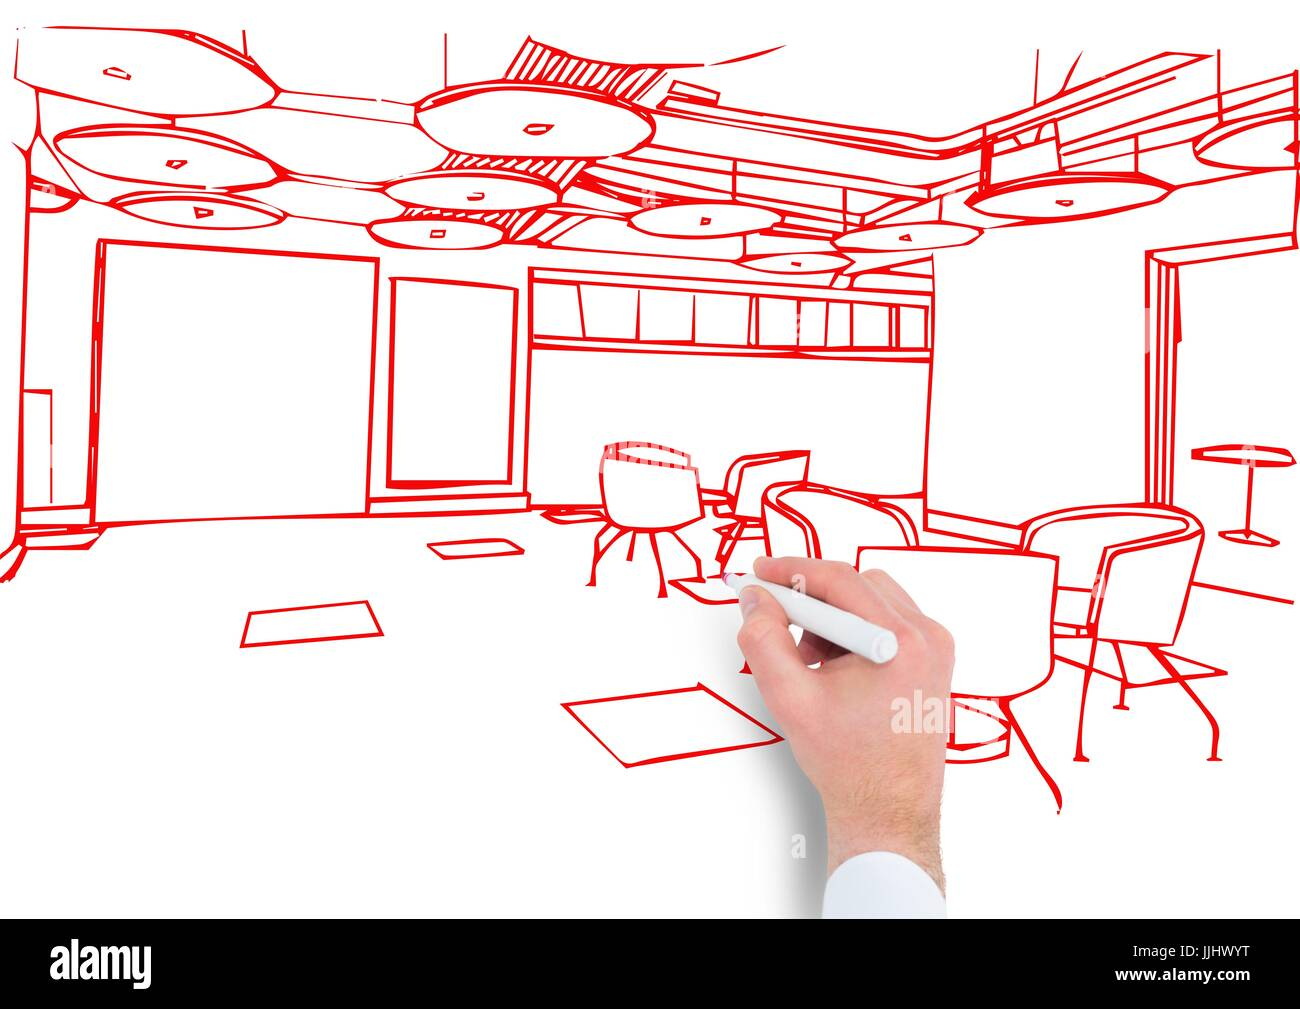 hand drawing office red lines - Stock Image